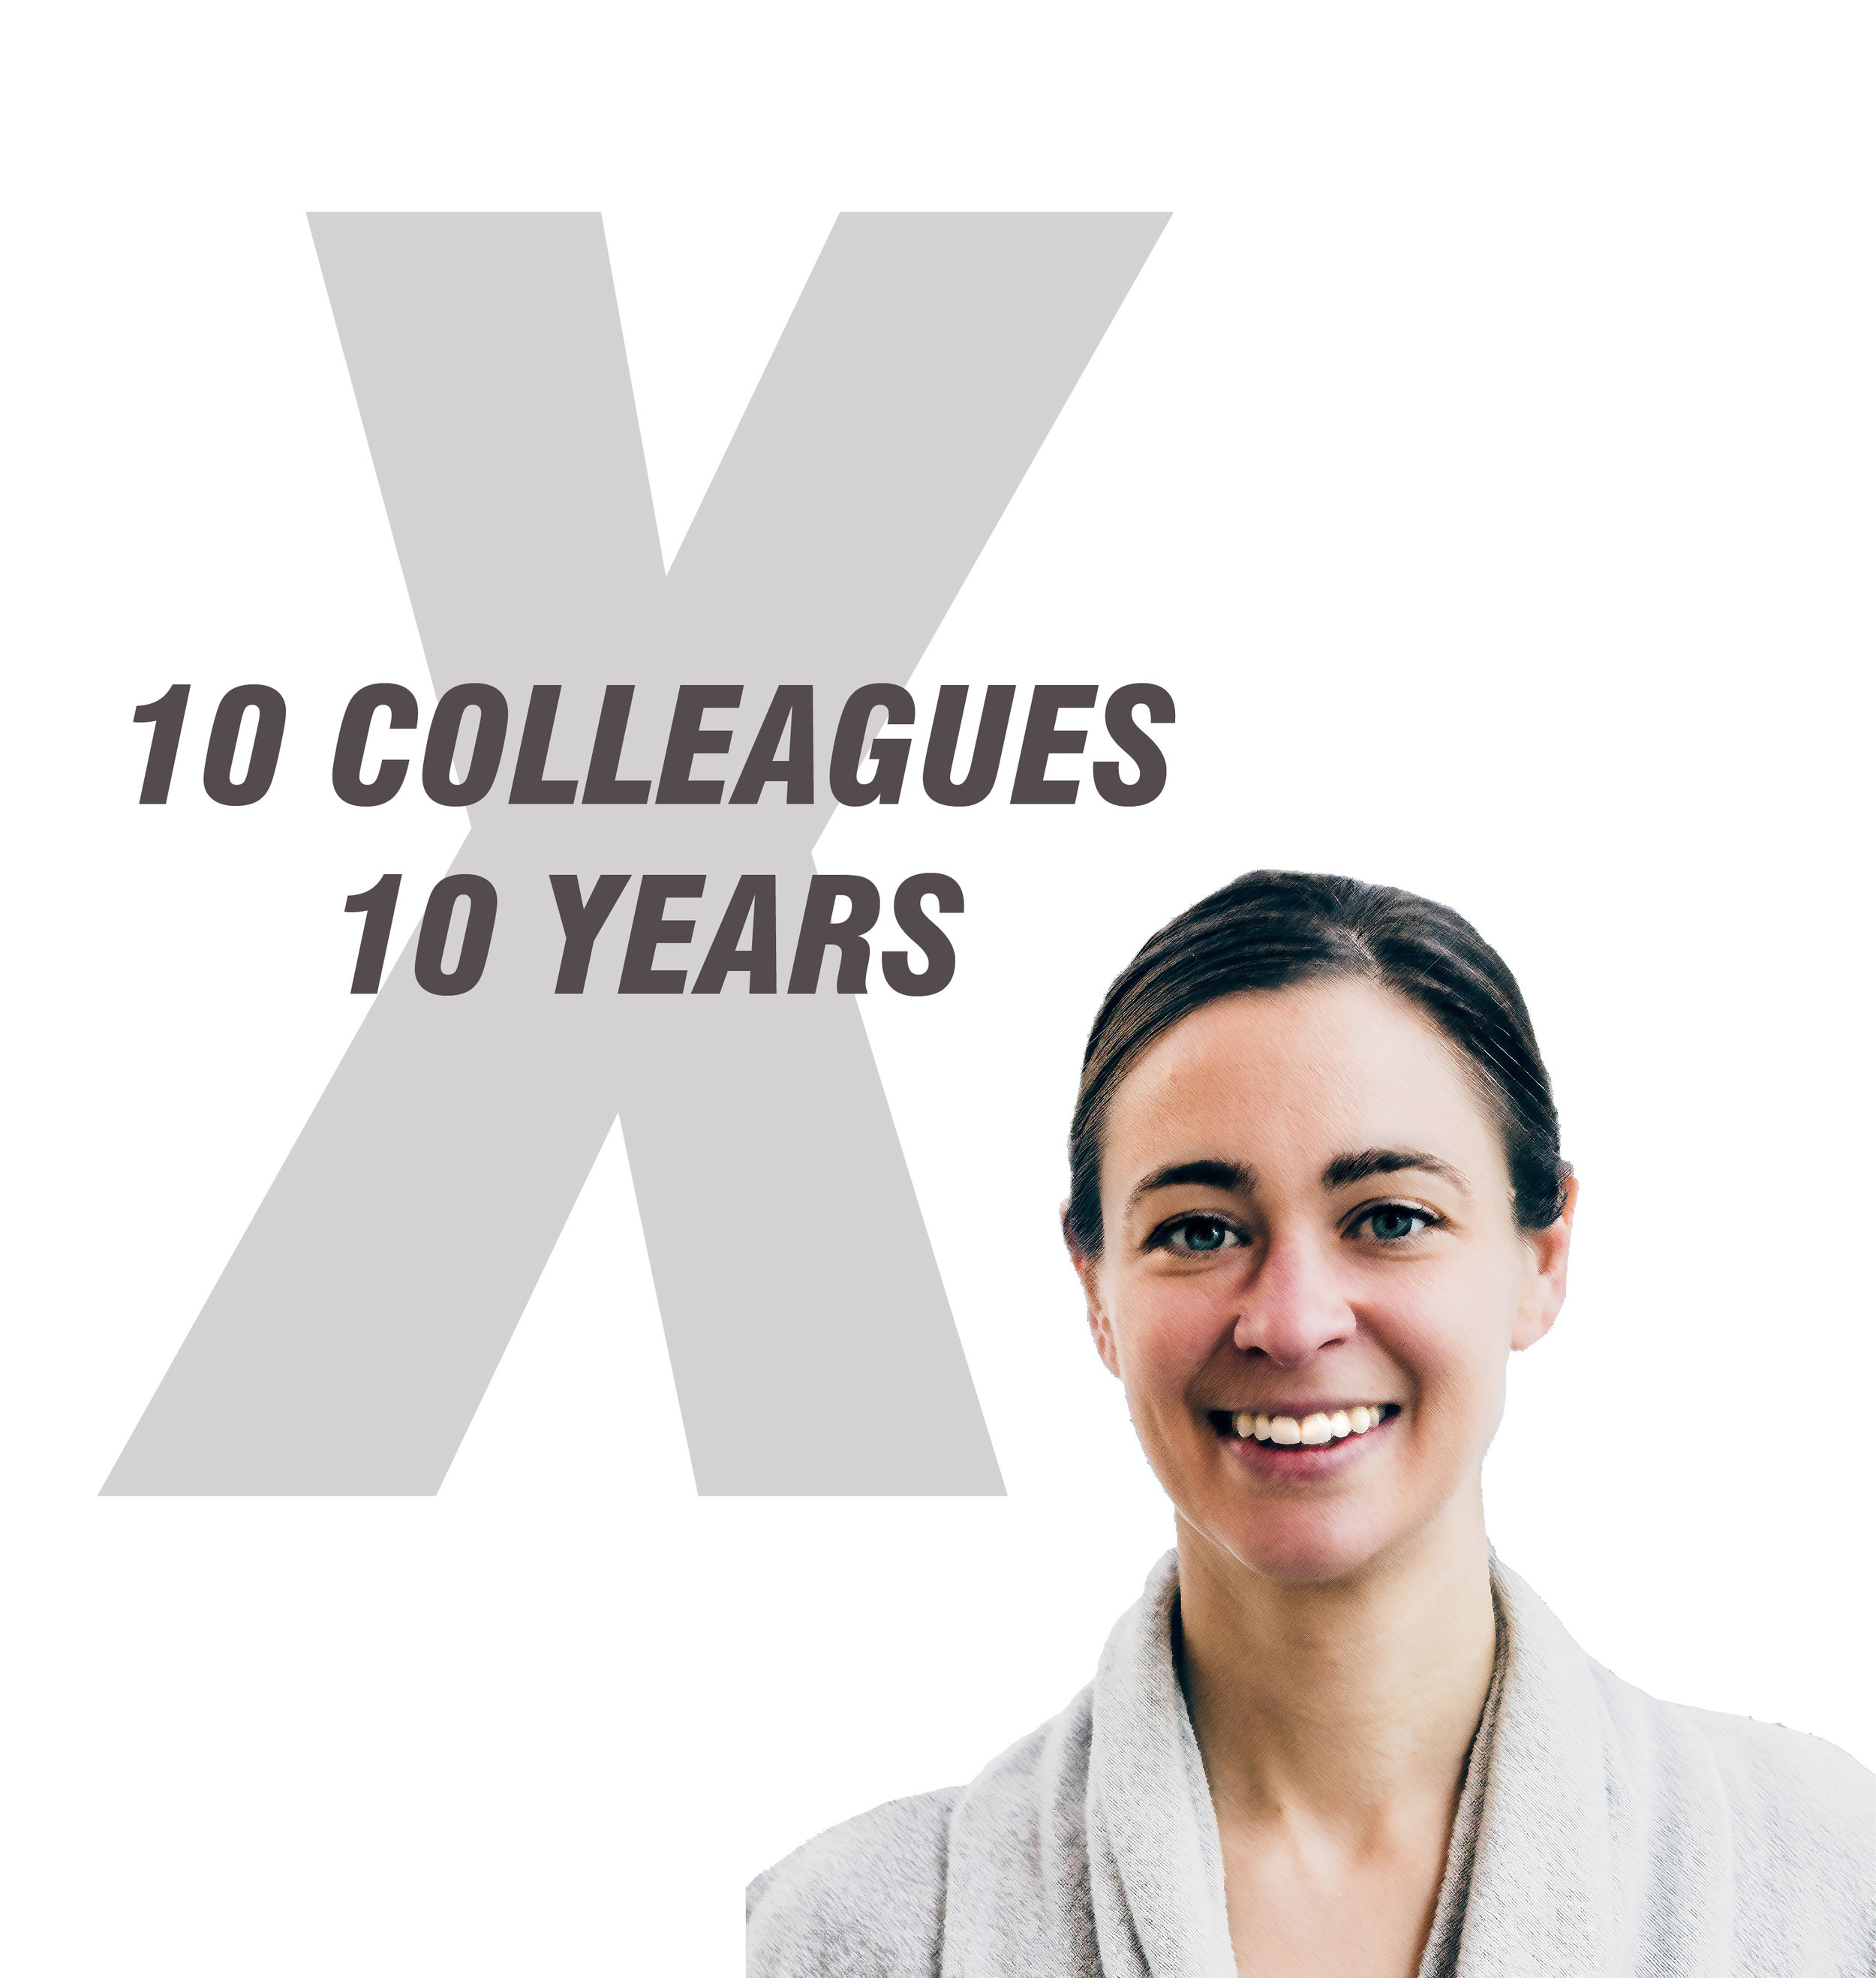 10 Colleagues 10 years logo.jpg